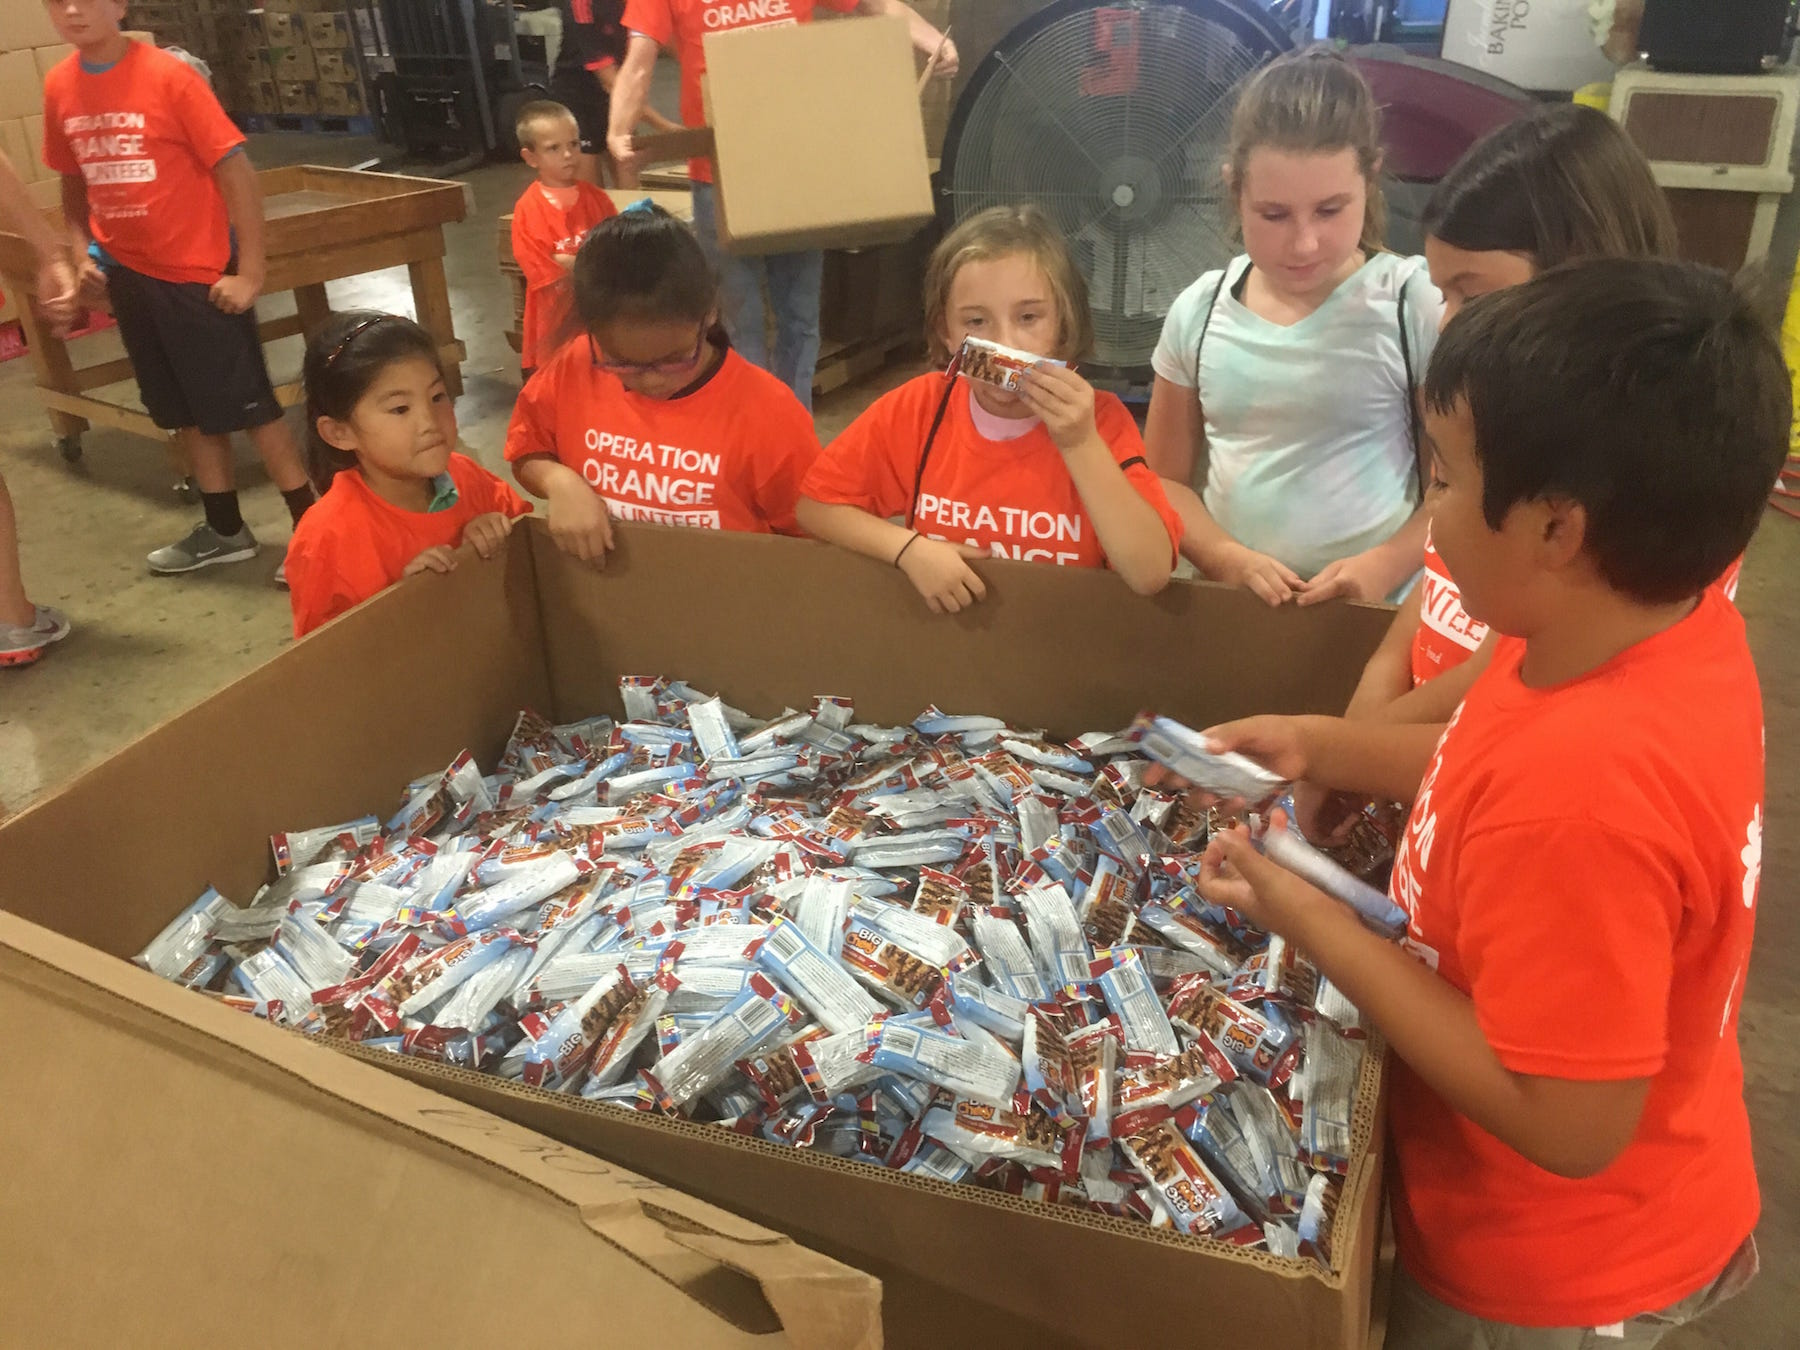 Family Volunteering Operation Orange